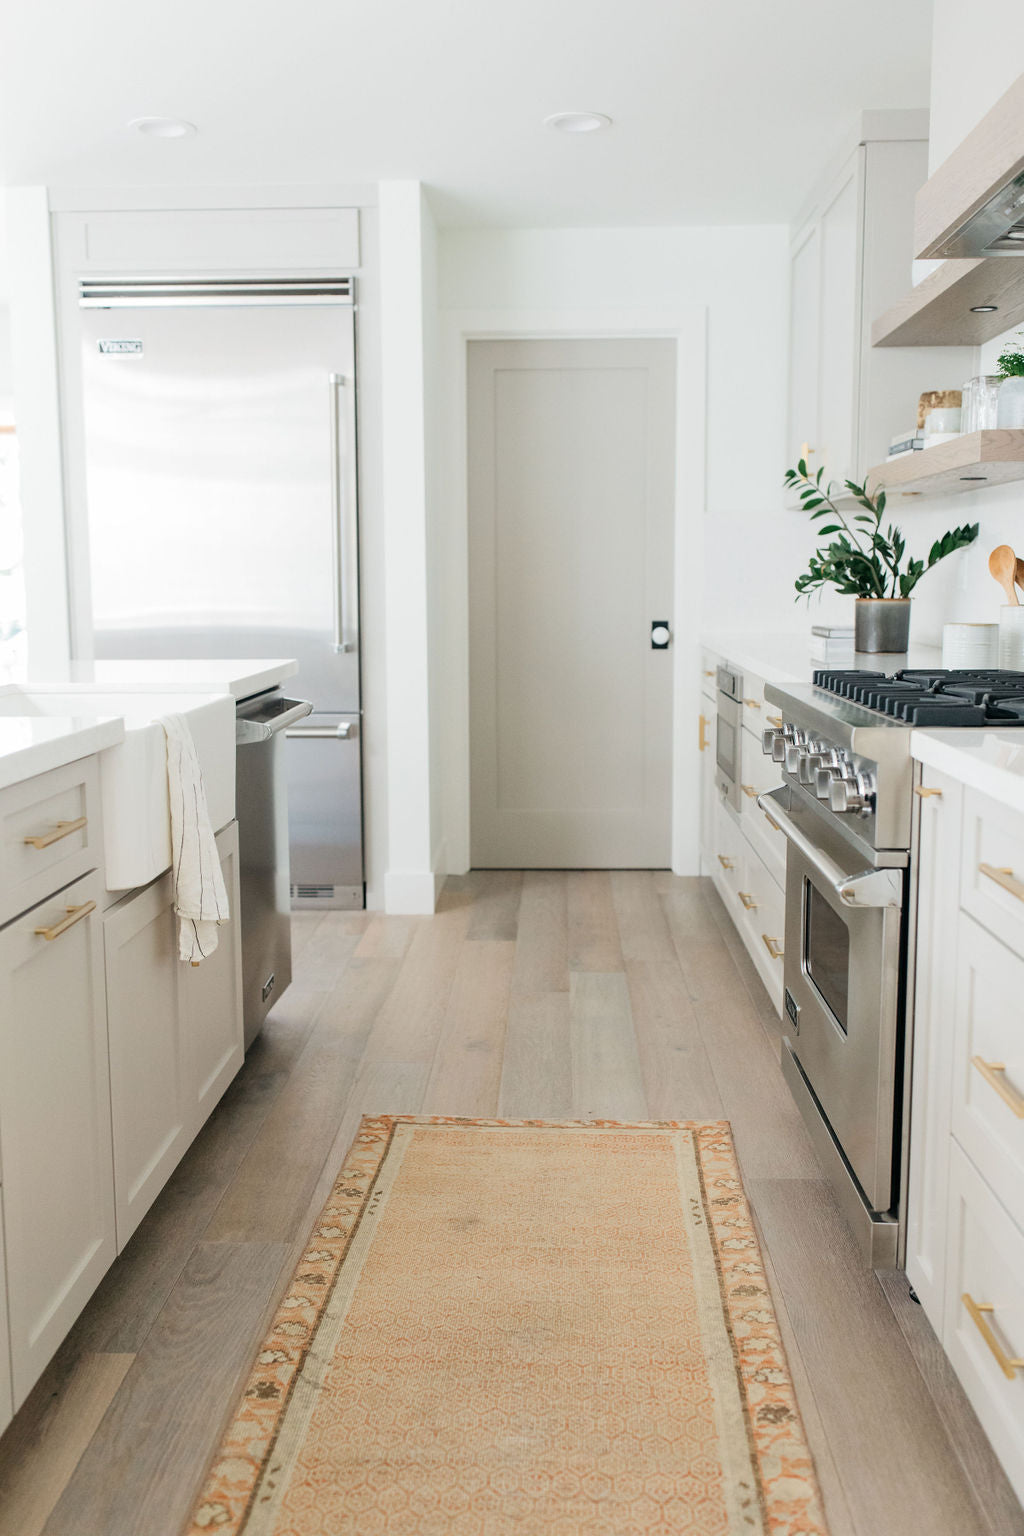 greige design shop + interiors alexandria project kitchen grey cabinets vintage runner open shelves